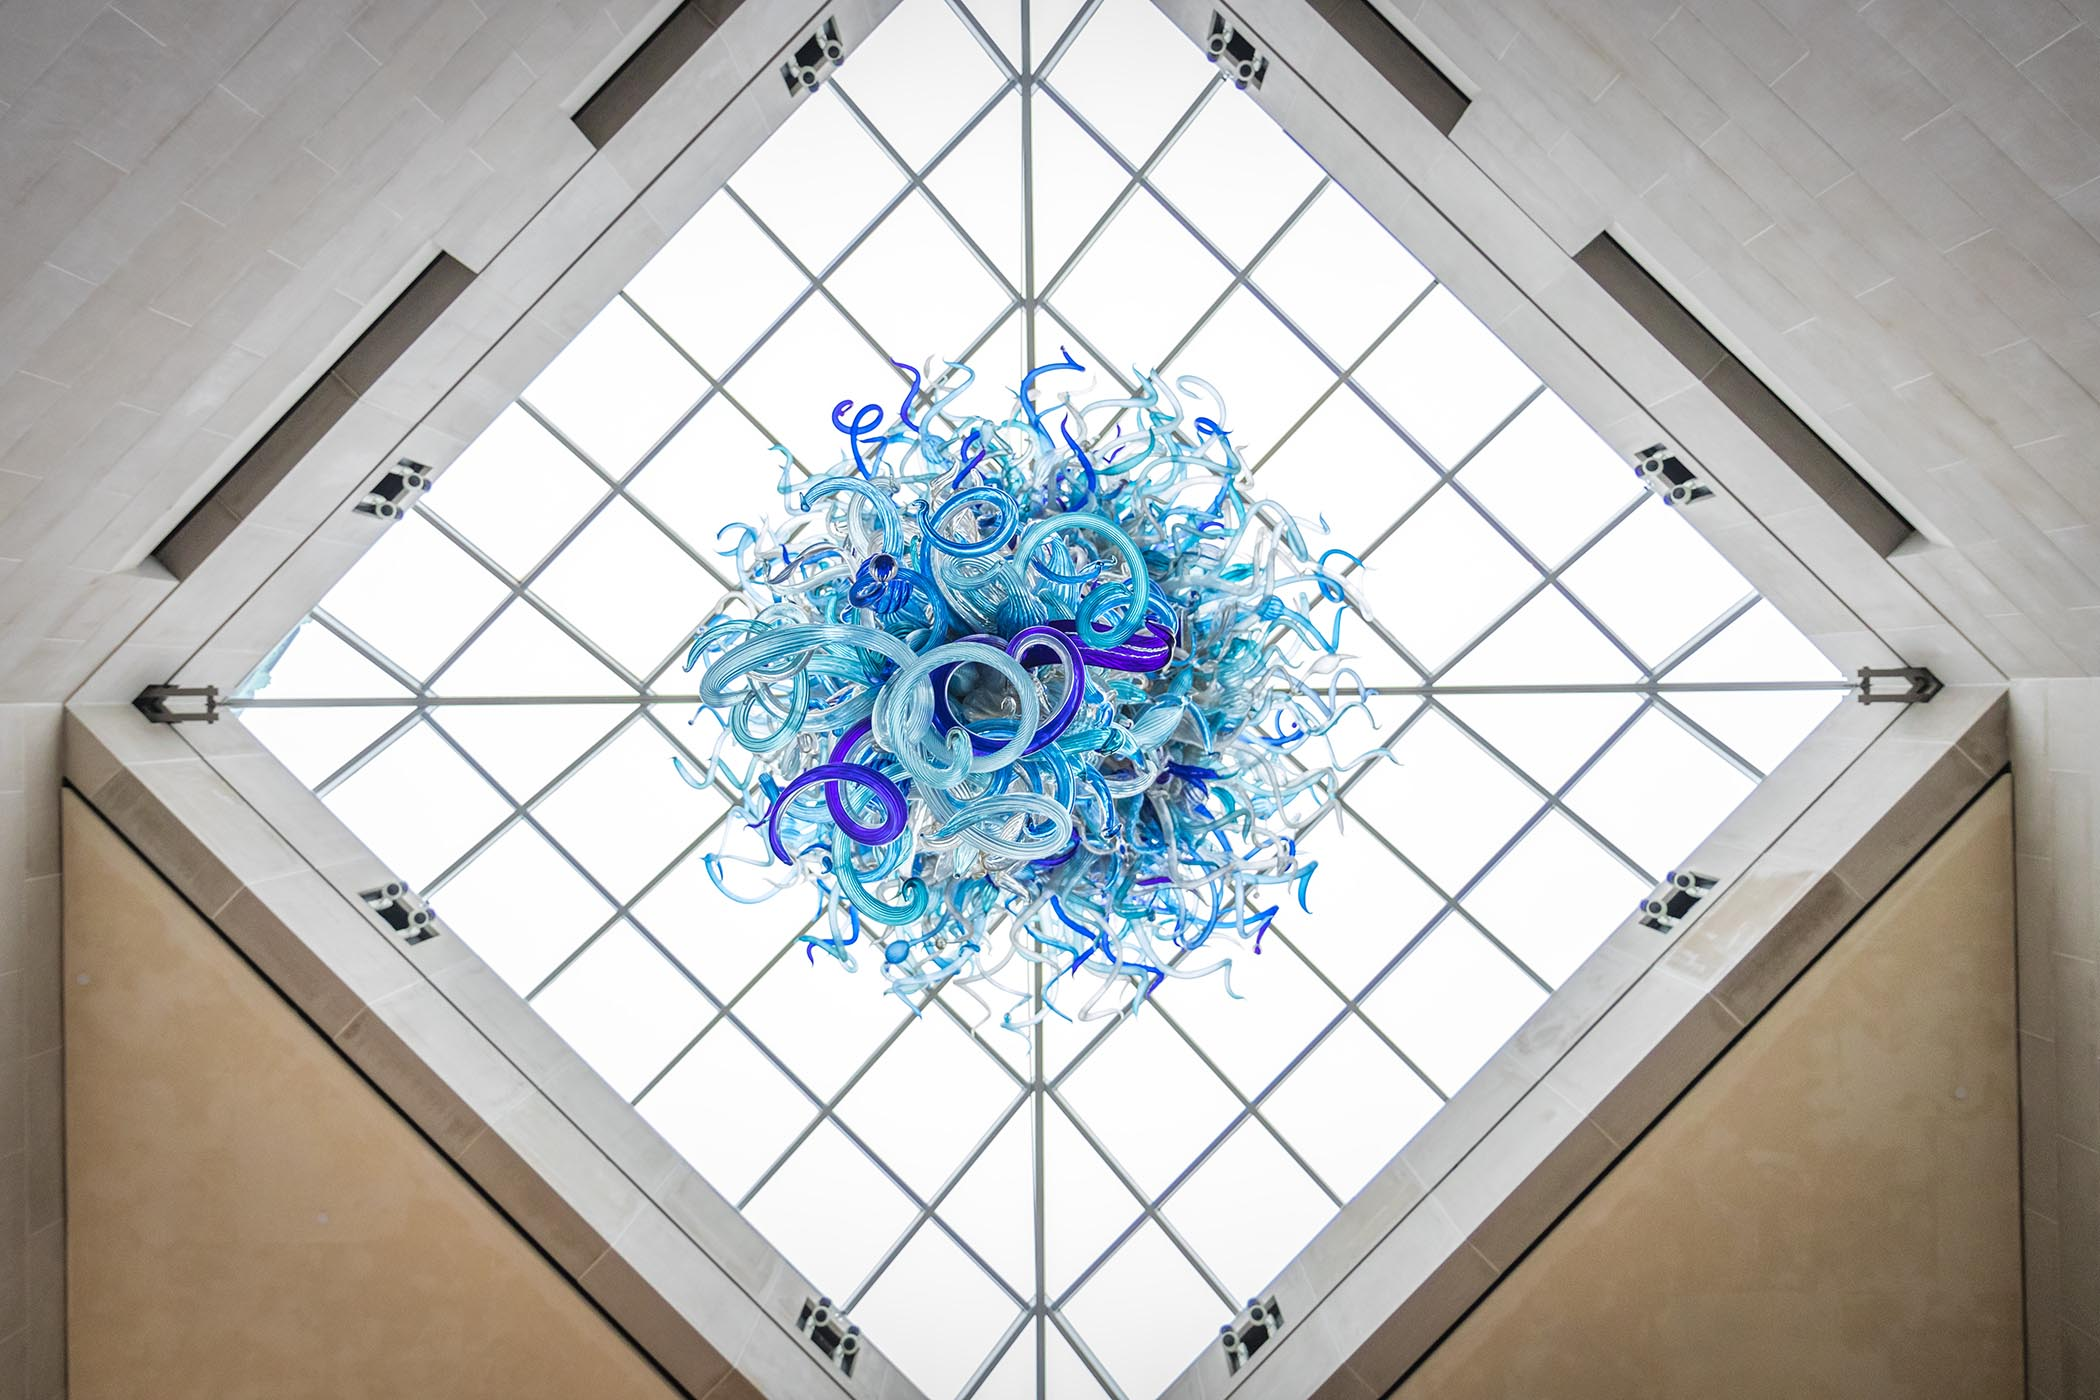 University of rochester looking up at a blue chihuly glass sculpture fandeluxe Gallery